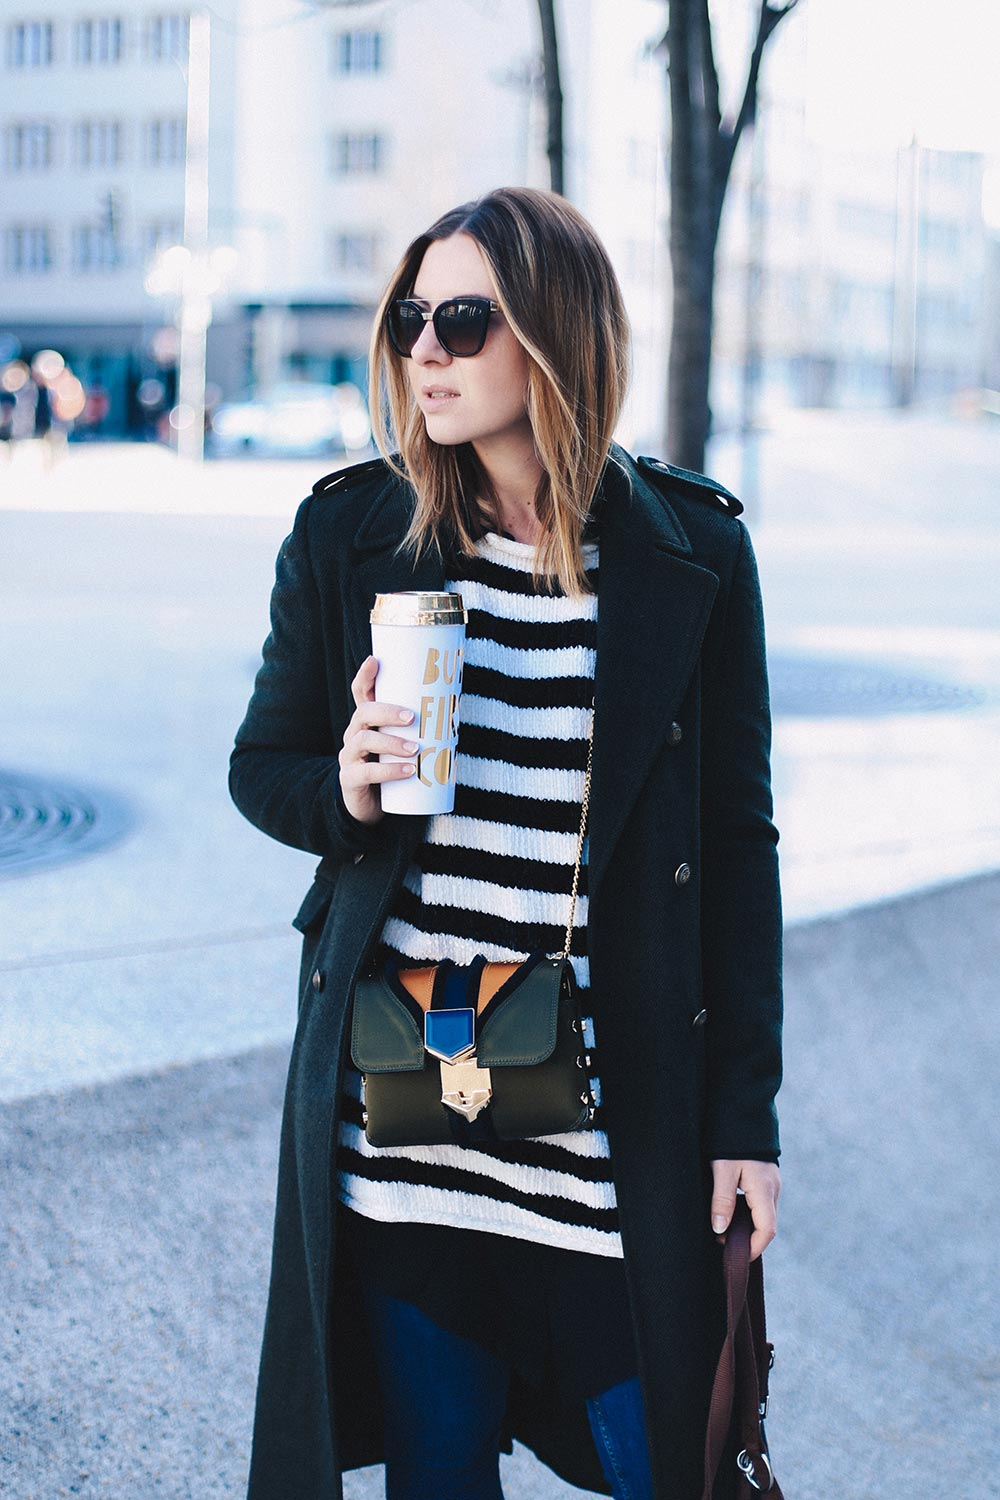 Jimmy Choo Lockett Petite Bag und Balenciaga Ceinture Boots, Skinny Jeans, Winter Streetstyle, Coffe To Go, But First Coffee, Frenchie, Fashion Blog, Modeblog, Outfit Blog, whoismocca.com